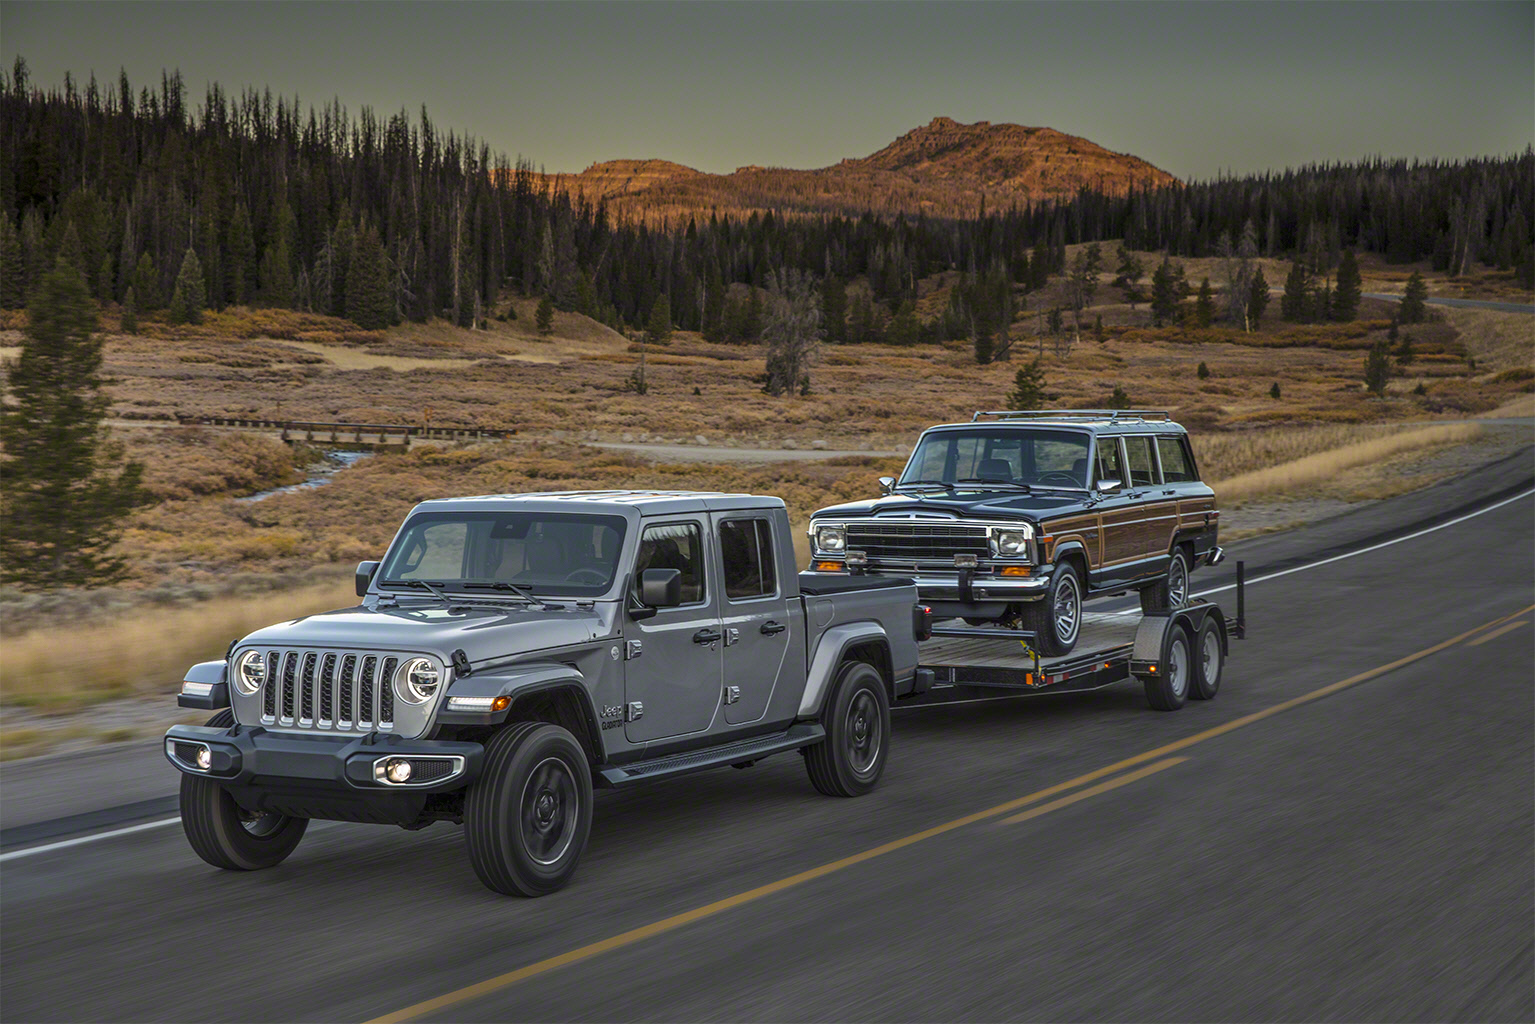 2020 Jeep Gladiator grand wagoneer trailer